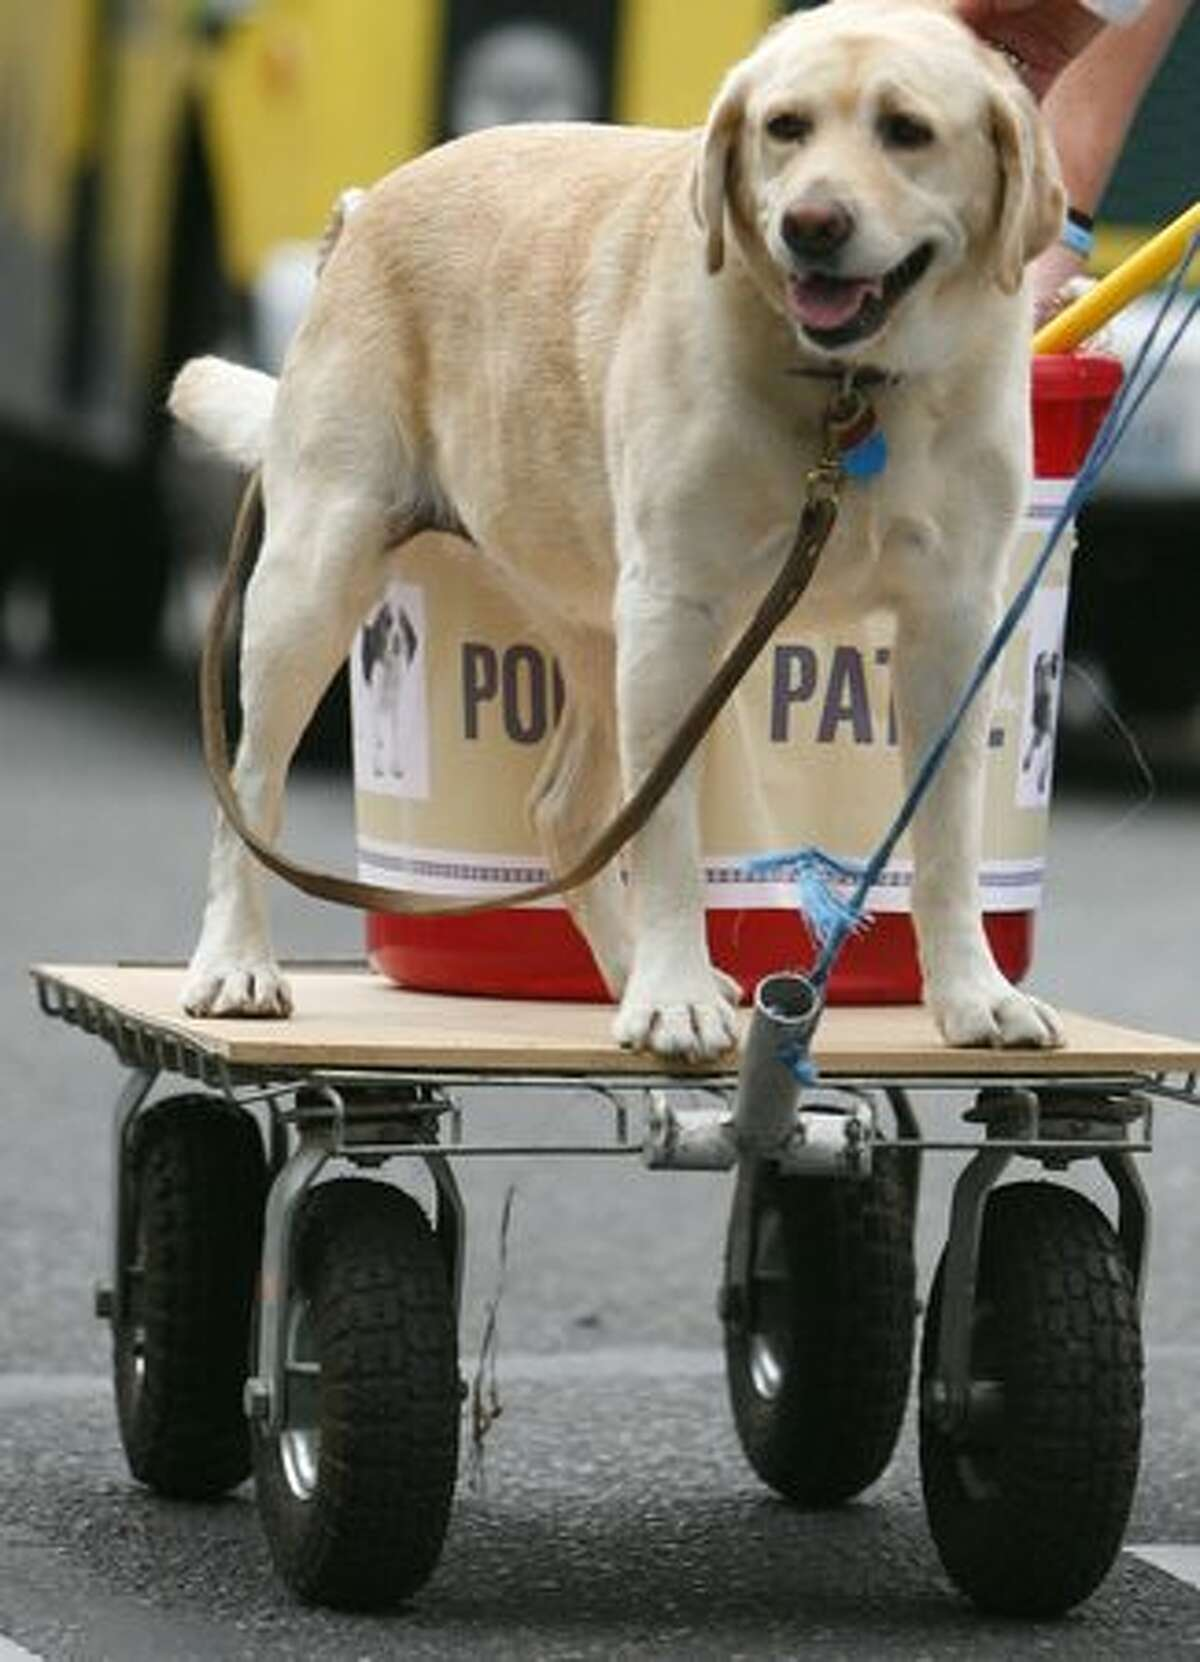 Kimber Missy, a yellow lab, rides behind the Riverdog Canine Coaching entry - on a poop patrol wagon - during the Issaquah Salmon Days festival parade.